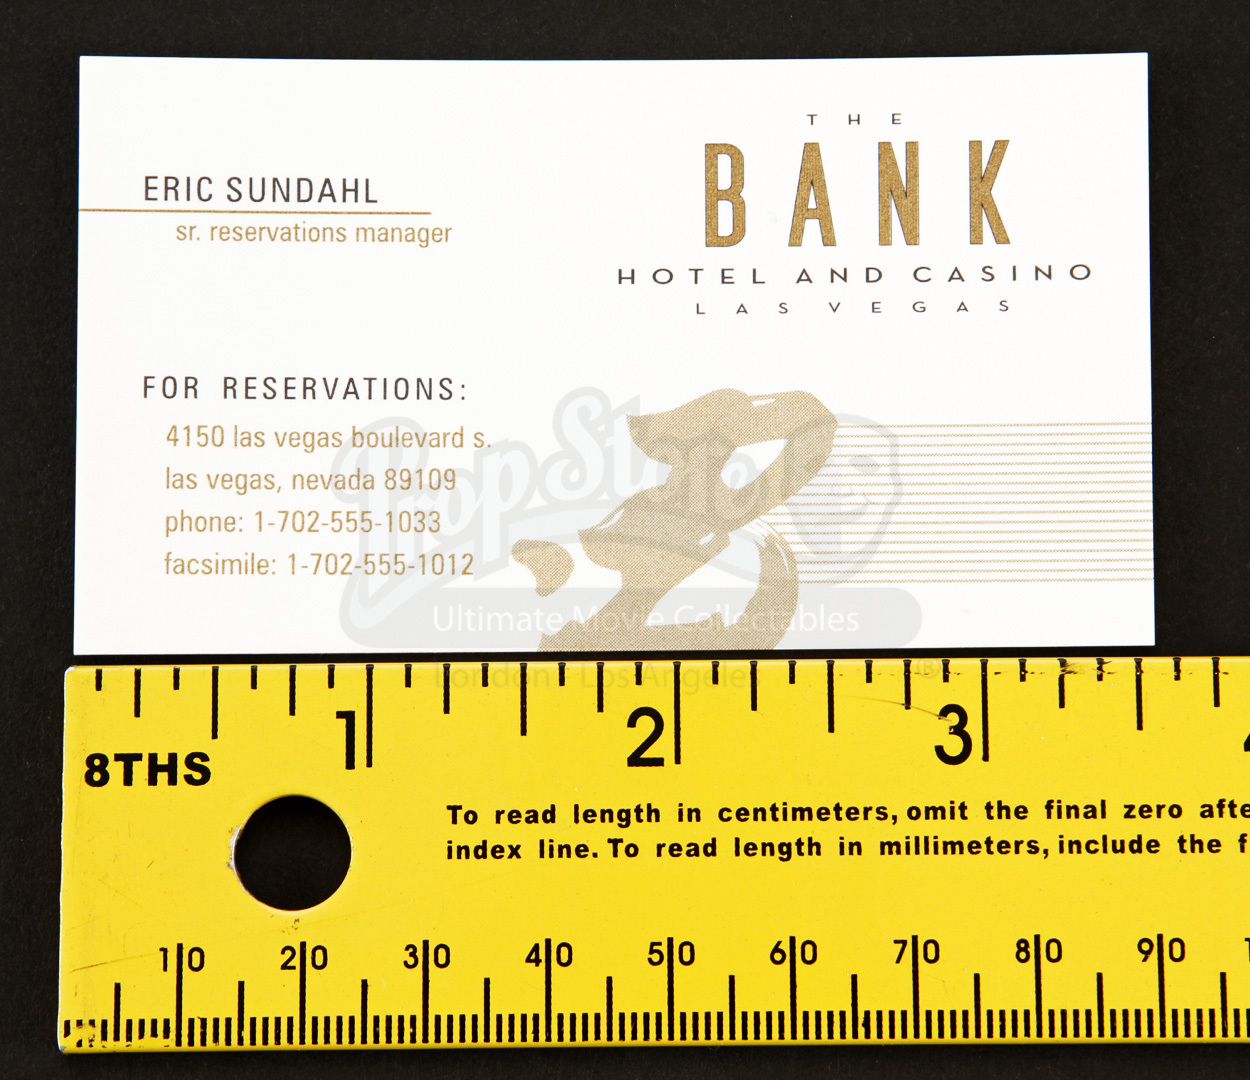 Bank Hotel And Casino Concierge Business Card | Prop Store ...